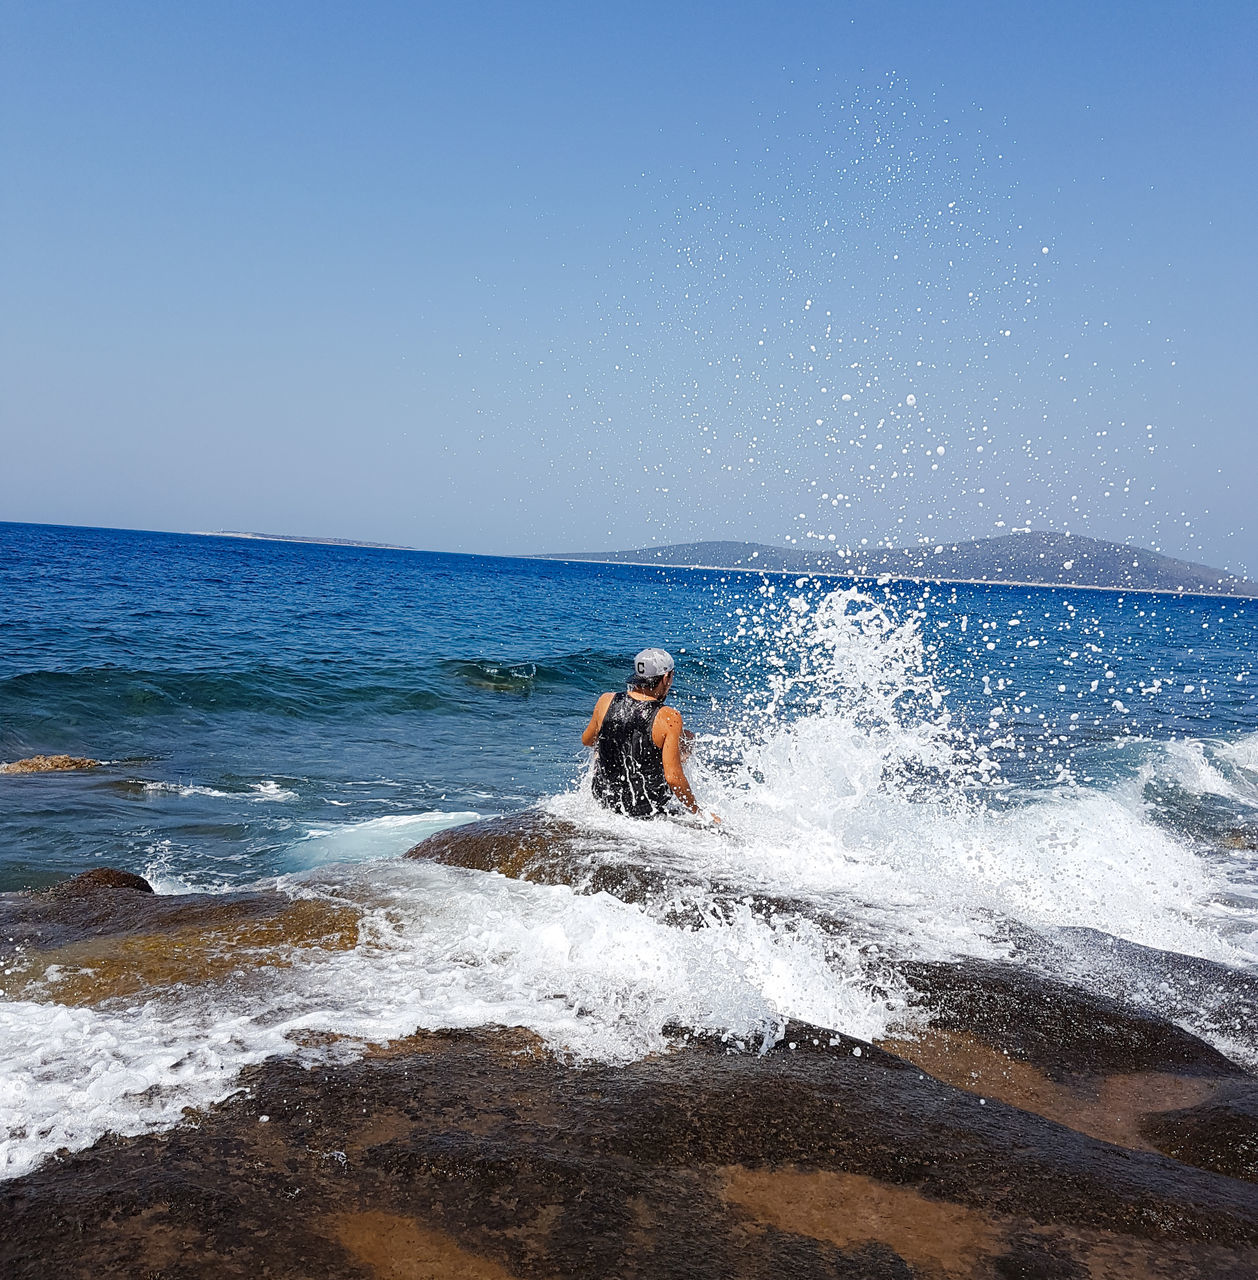 sea, horizon over water, motion, wave, nature, one person, water, splashing, beauty in nature, outdoors, sky, scenics, beach, day, clear sky, adventure, sport, healthy lifestyle, real people, adults only, men, power in nature, one man only, adult, people, sportsman, only men